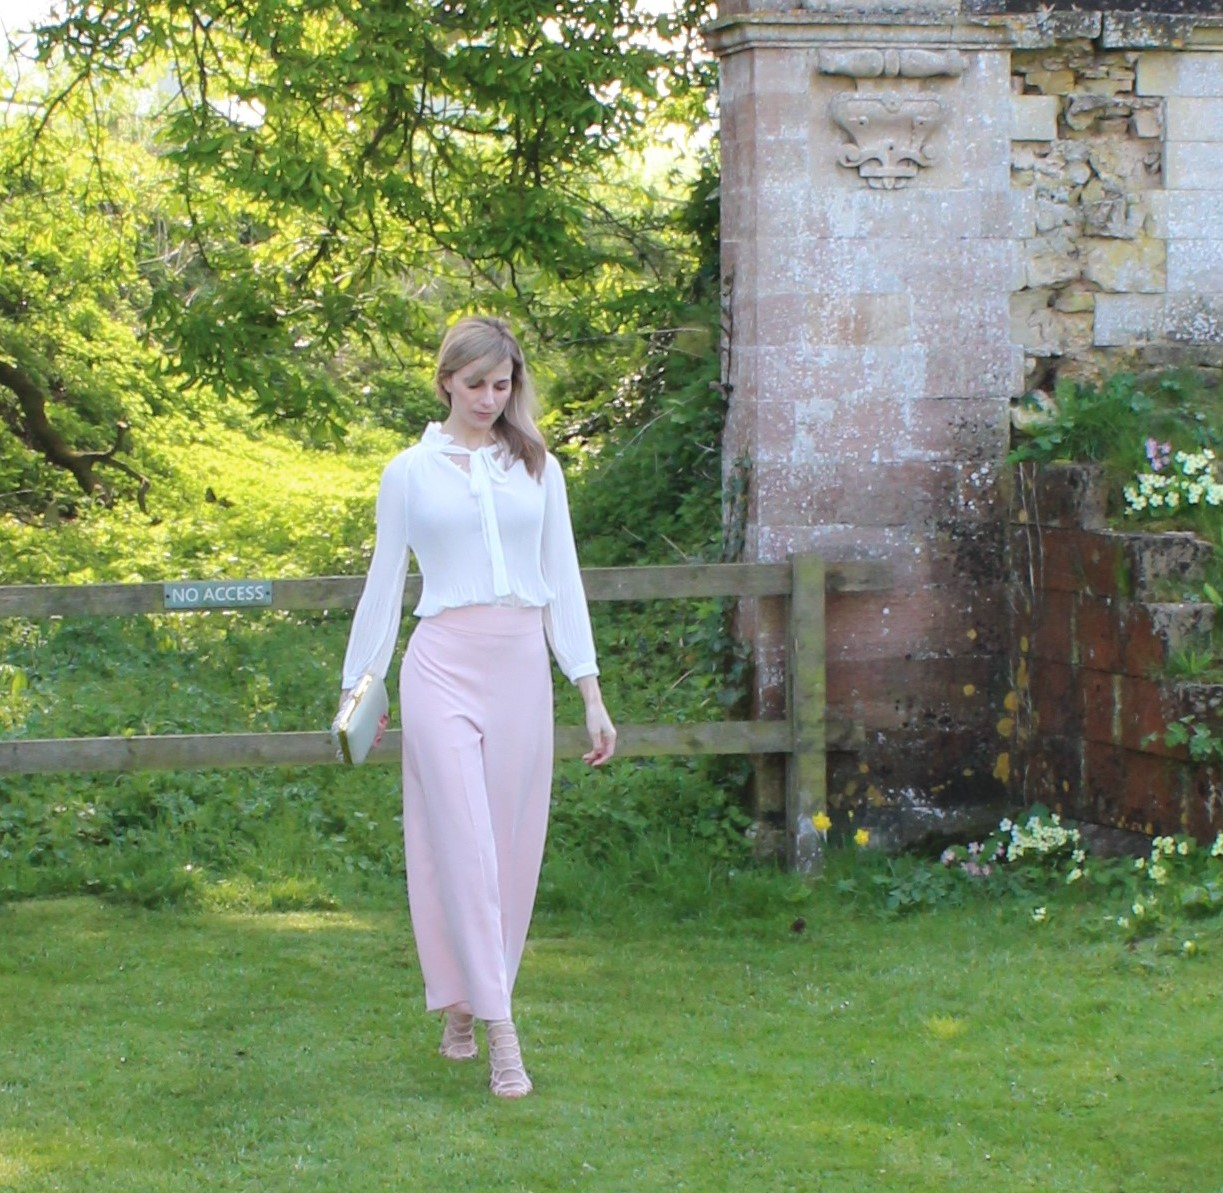 Blush Pink OOTD featuring Zara culottes - 2